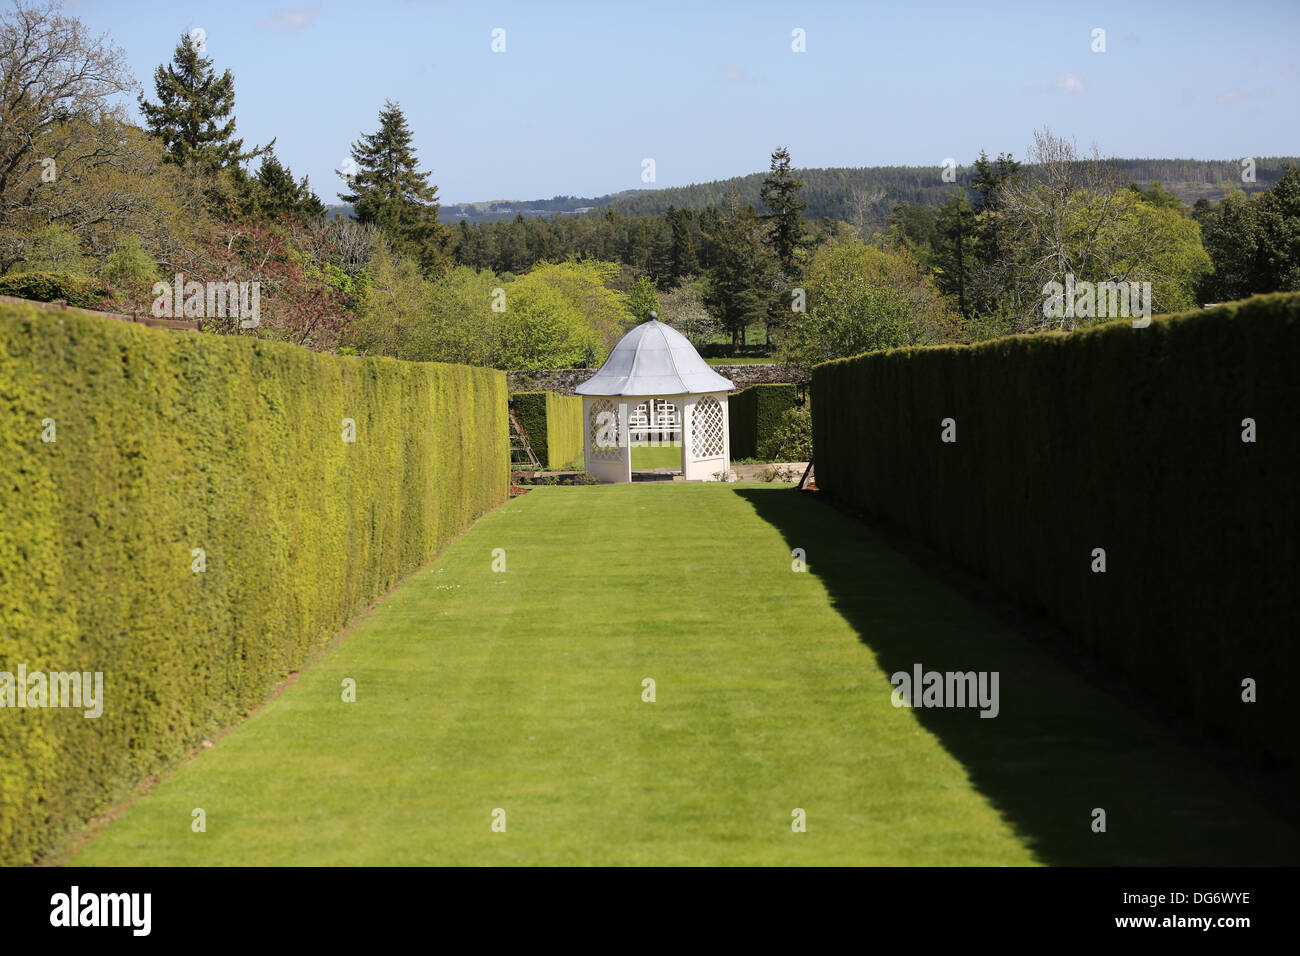 The gardens at Drum Castle in Royal Deeside near Banchory, Aberdeenshire, Scotland, UK - Stock Image